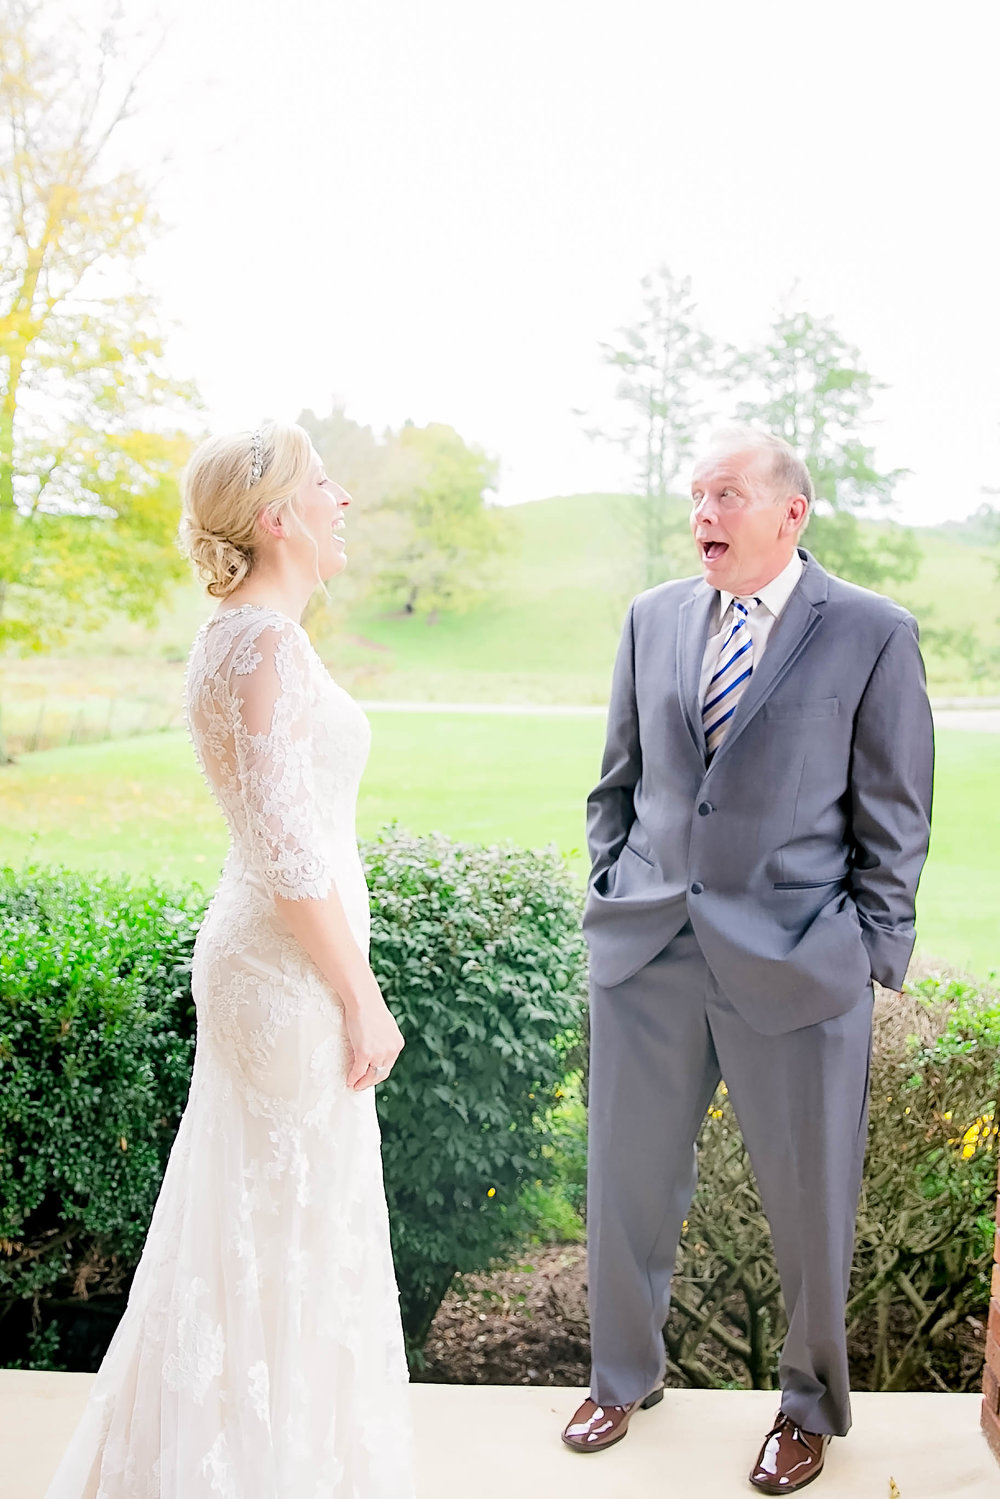 Mountain City, TN farm wedding, East Tennessee fall wedding, Tri Cities Wedding, father of the bride first look